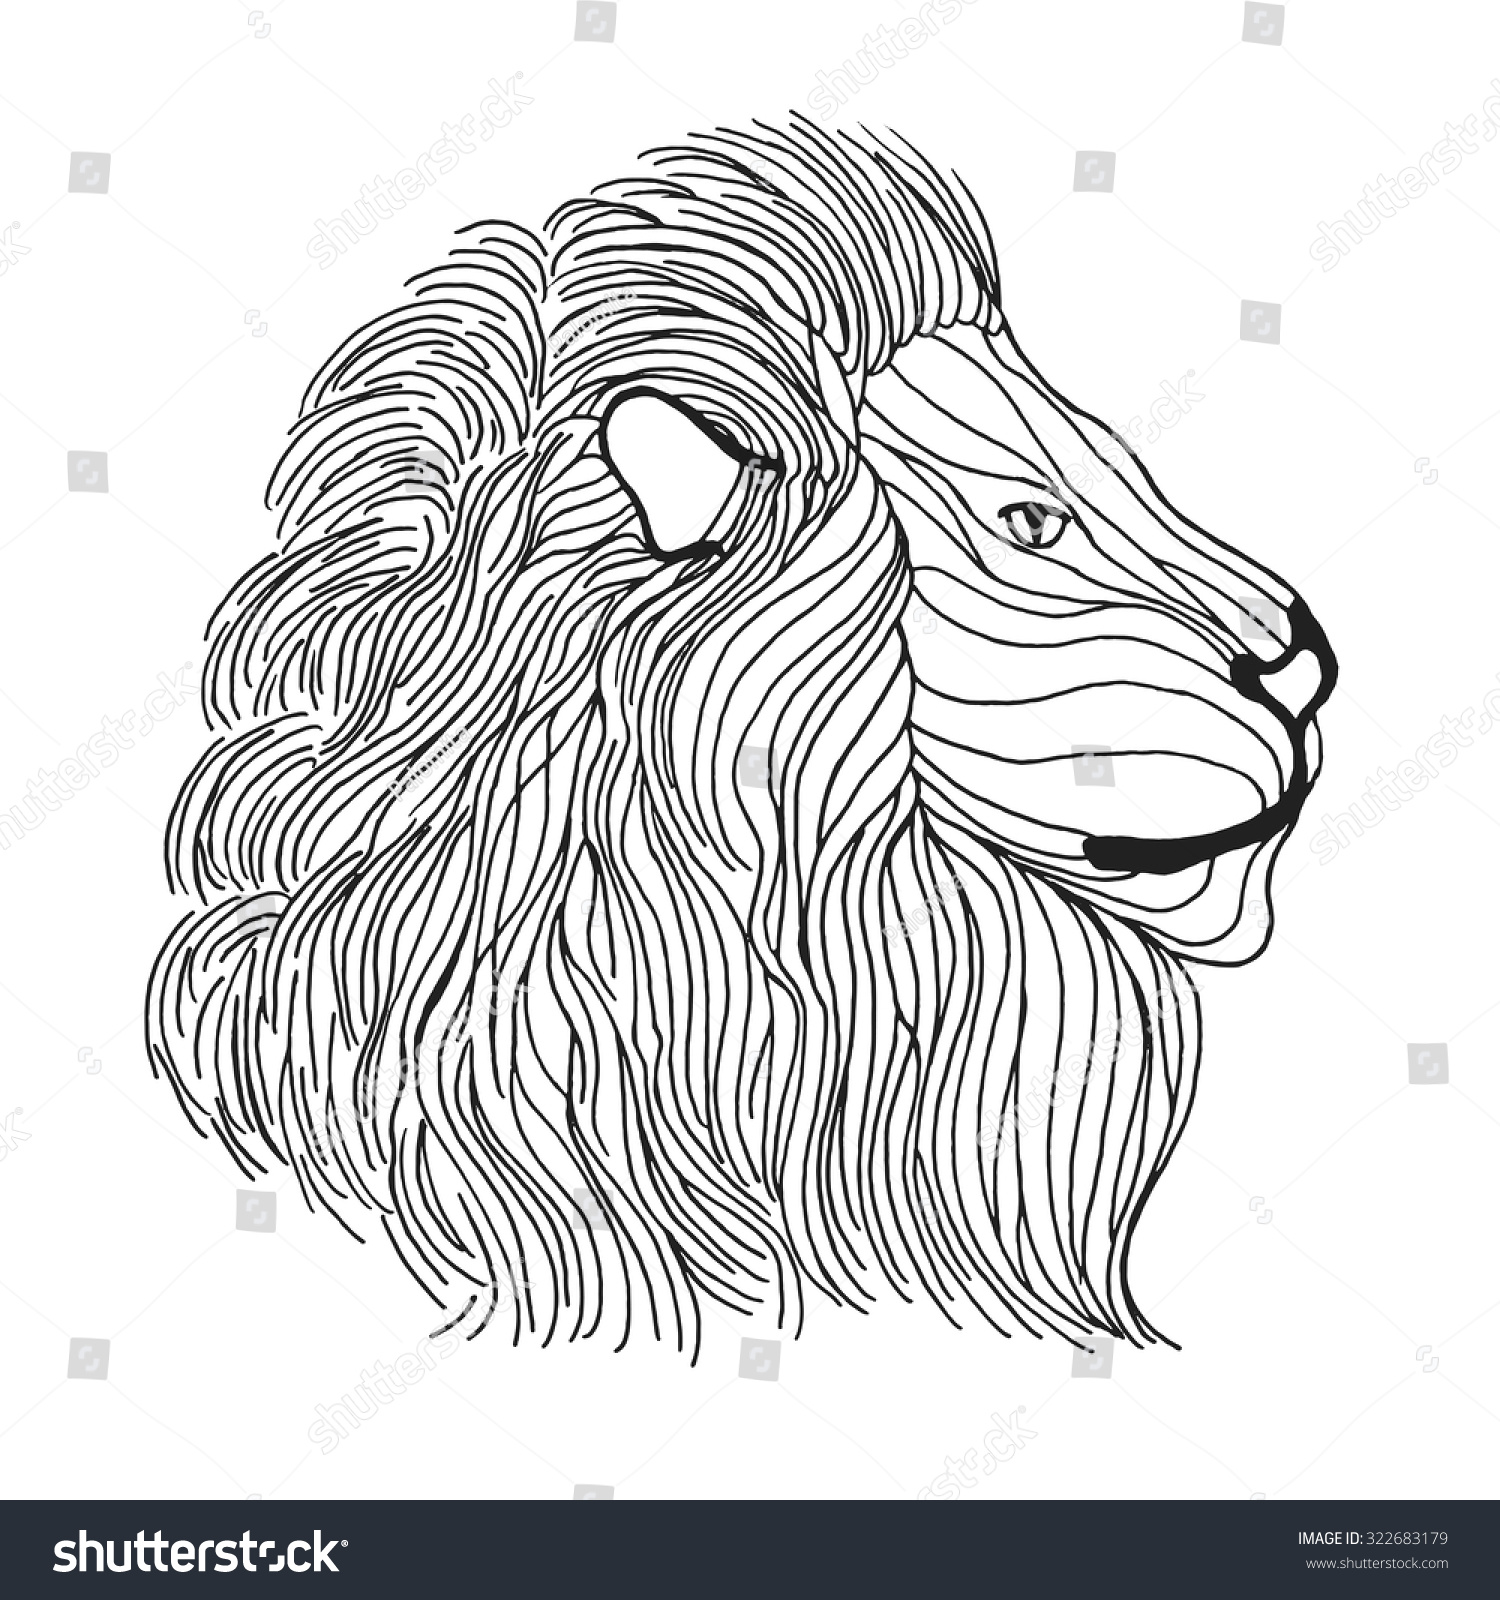 Coloring Pages Lion Head Coloring Page lion head coloring page eassume com eassume